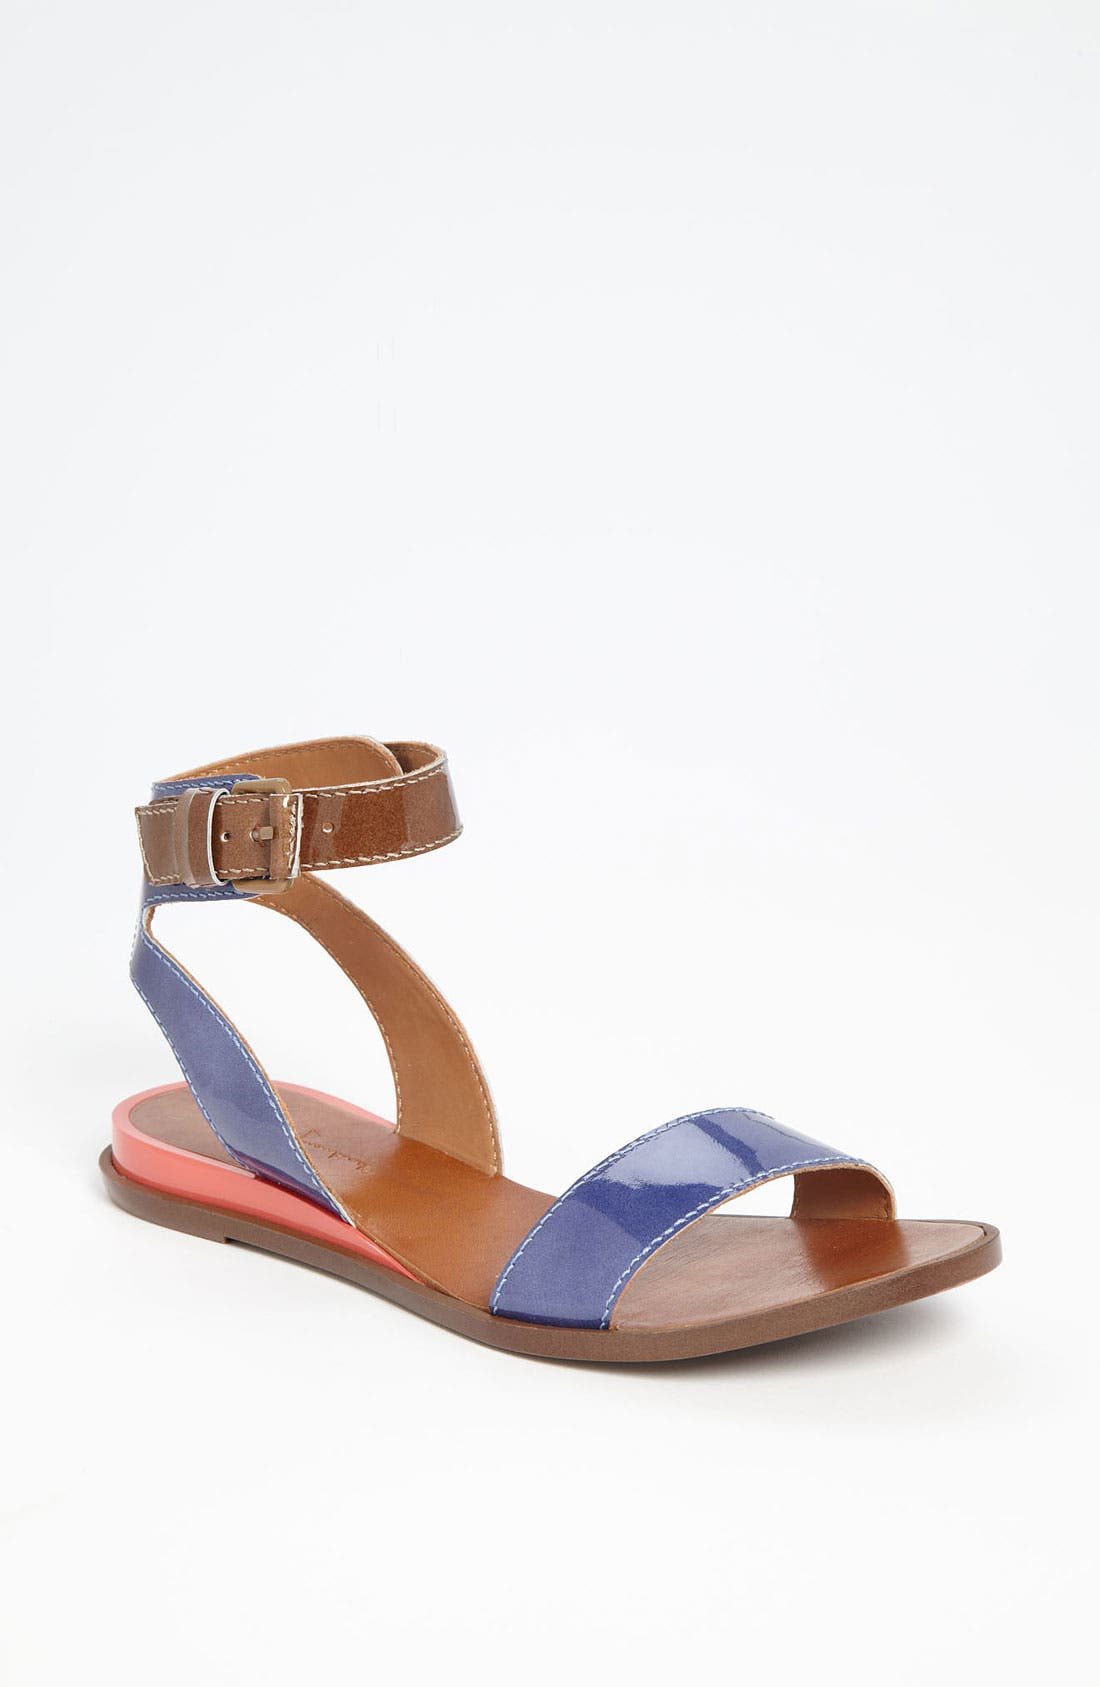 Main Image - 7 For All Mankind® 'Maura' Sandal